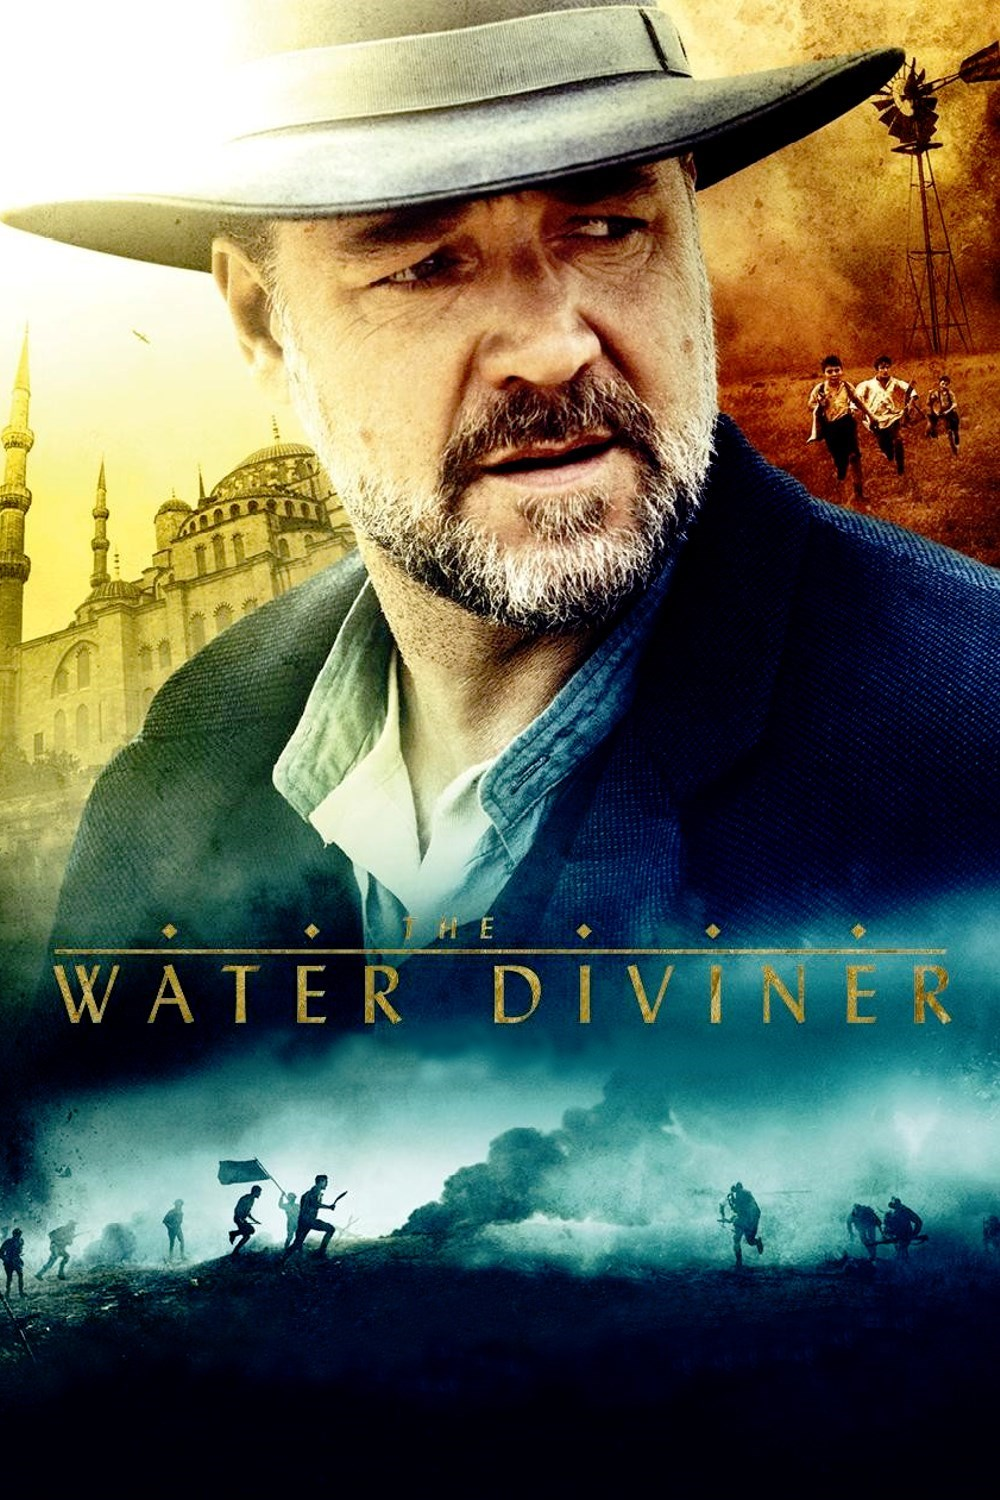 The.Water.Diviner.2014. 720p.BluRay.x265 مترجم